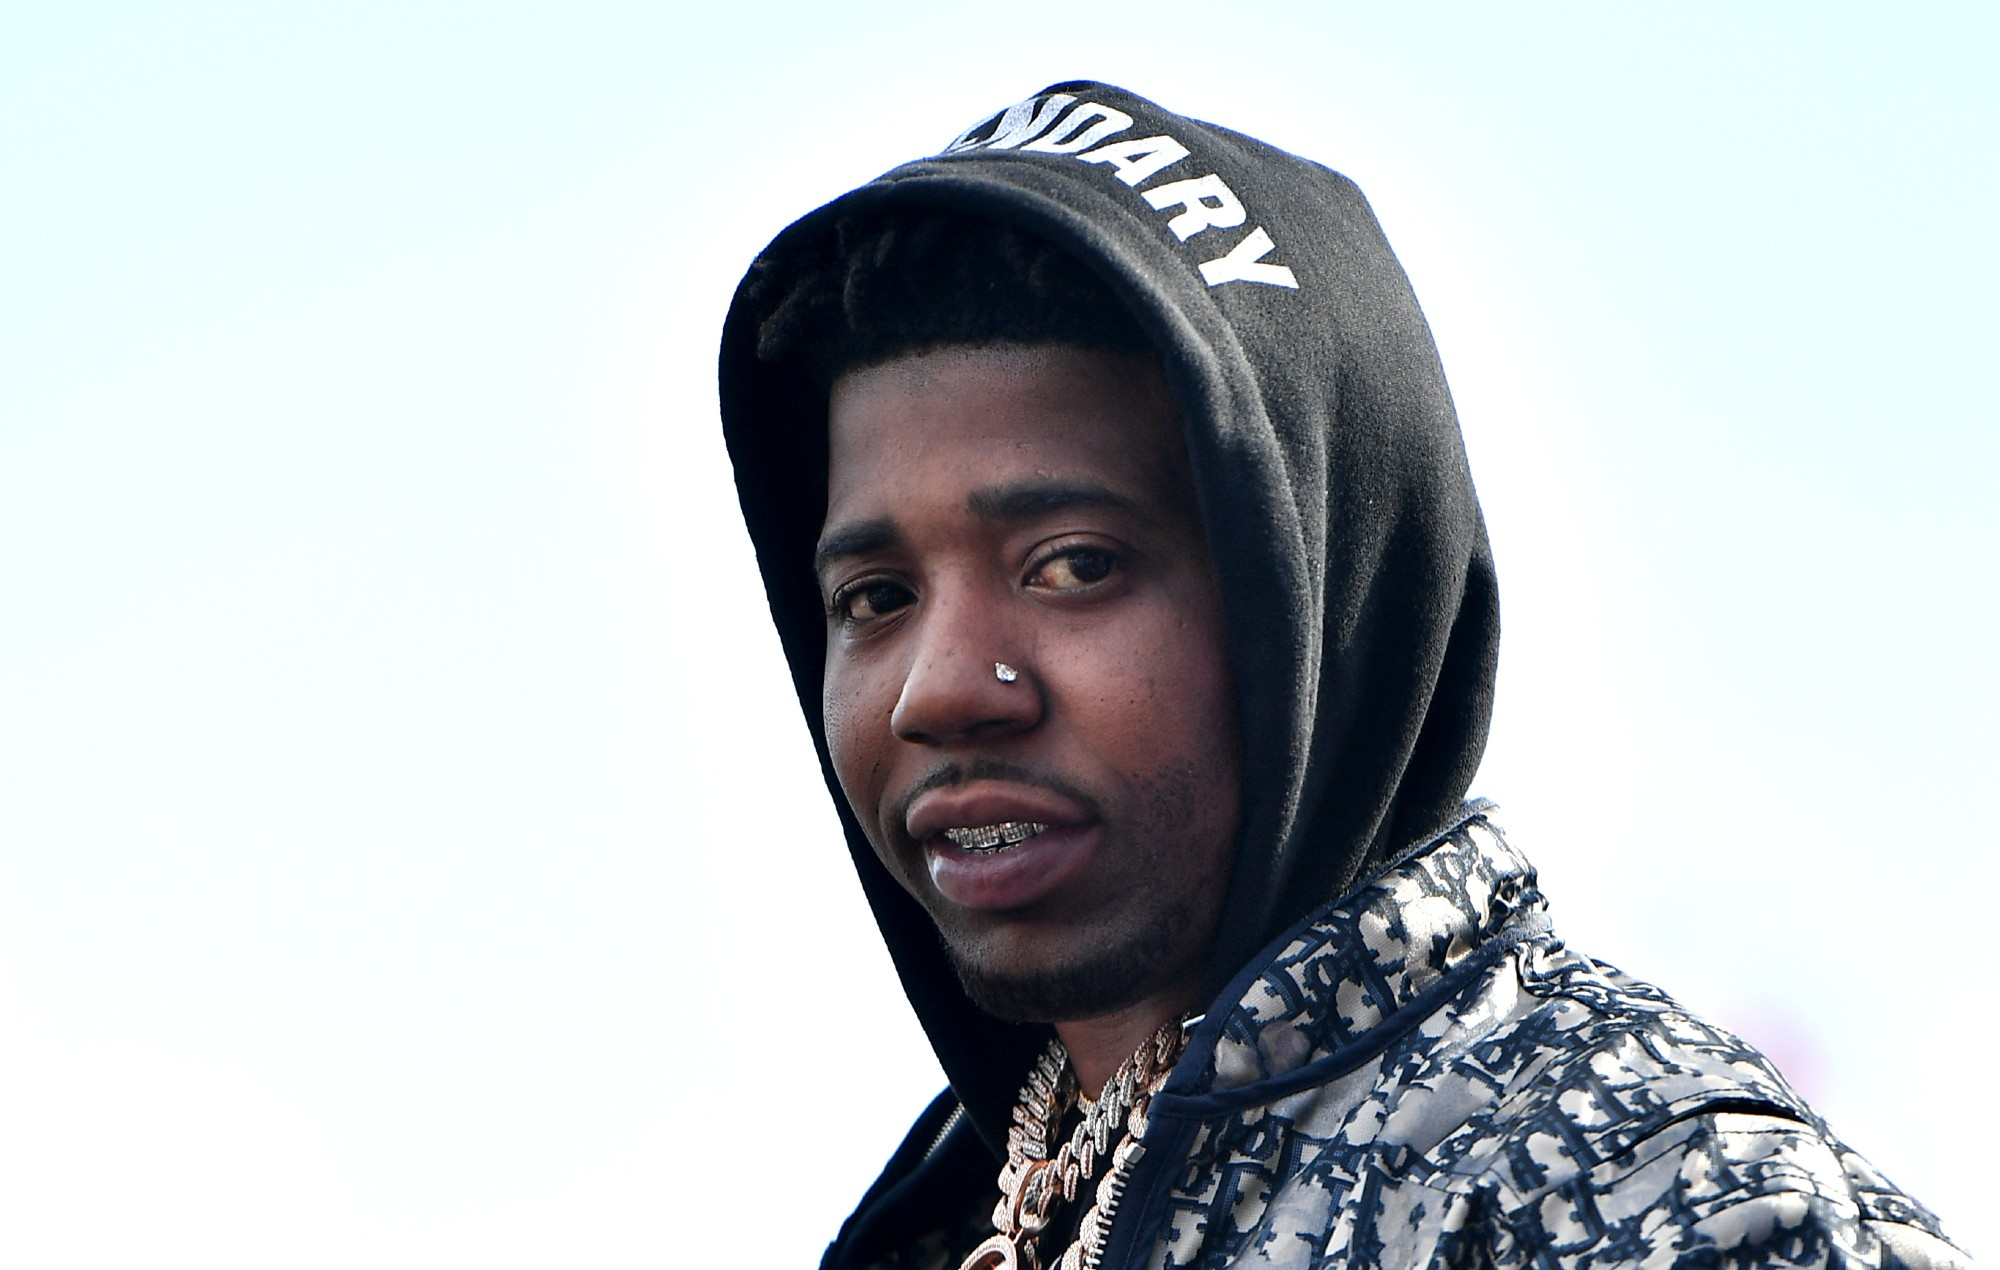 YFN Lucci has been released from jail on bond after murder charge